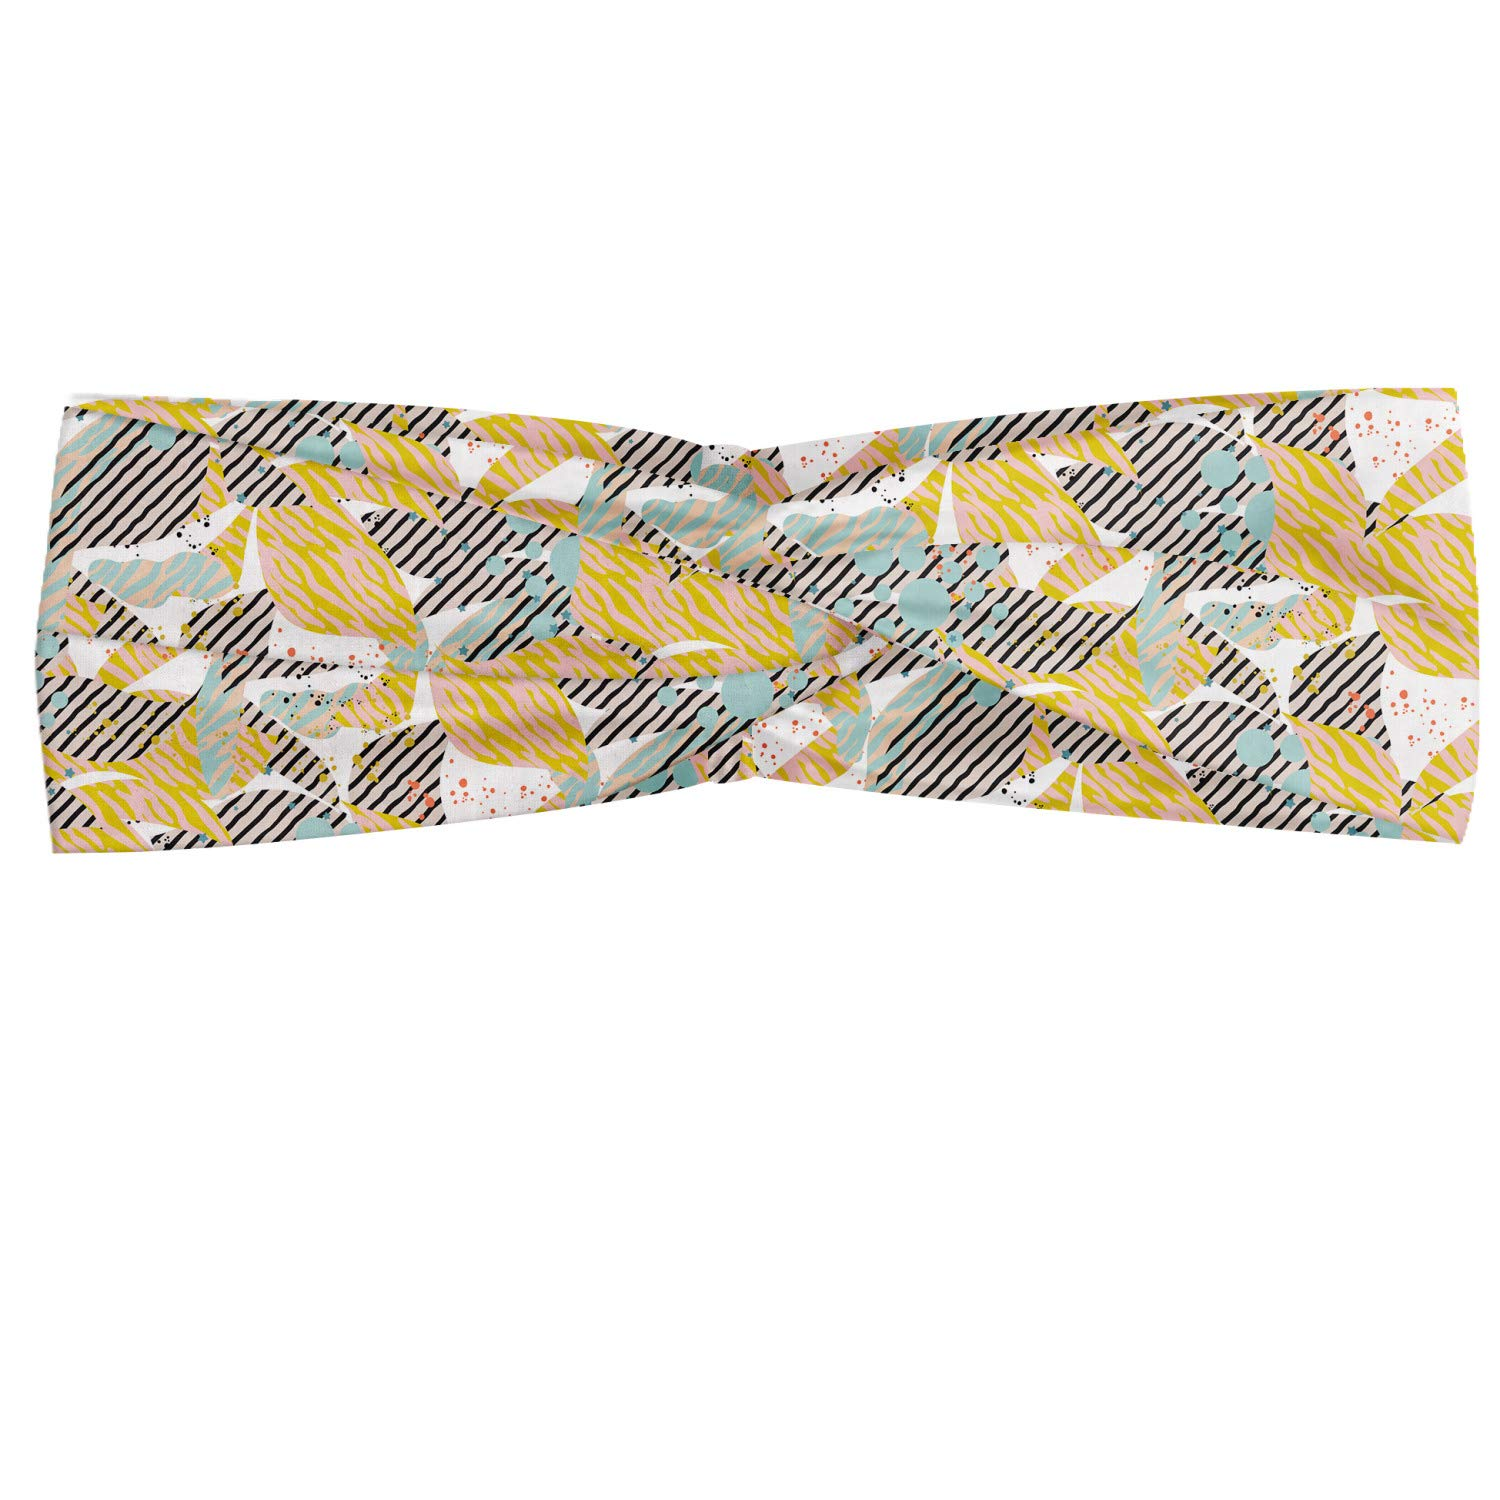 Ambesonne Floral Headband, Abstract Digital Artwork with Stripes Flowers and Grunge Paint Splashes Image, Elastic and Soft Women's Bandana for Sports and Everyday Use, Multicolor